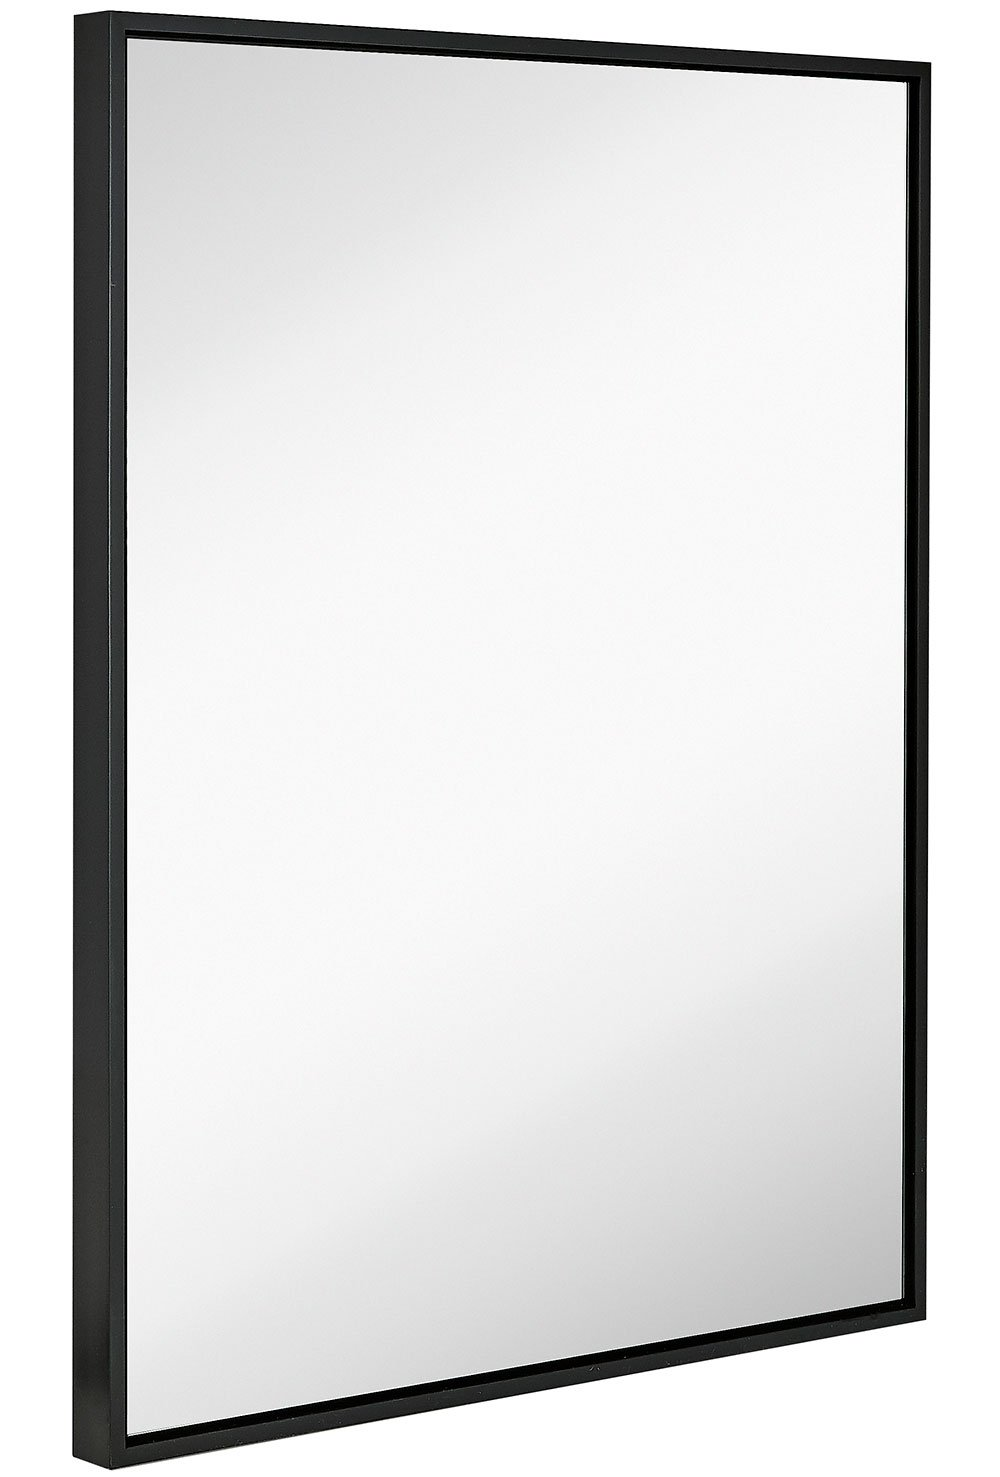 Hamilton Hills Clean Large Modern Black Frame Wall Mirror | Contemporary Premium Silver Backed Floating Glass Panel | Vanity, Bedroom, or Bathroom | Mirrored Rectangle Hangs Horizontal or Vertical by Hamilton Hills